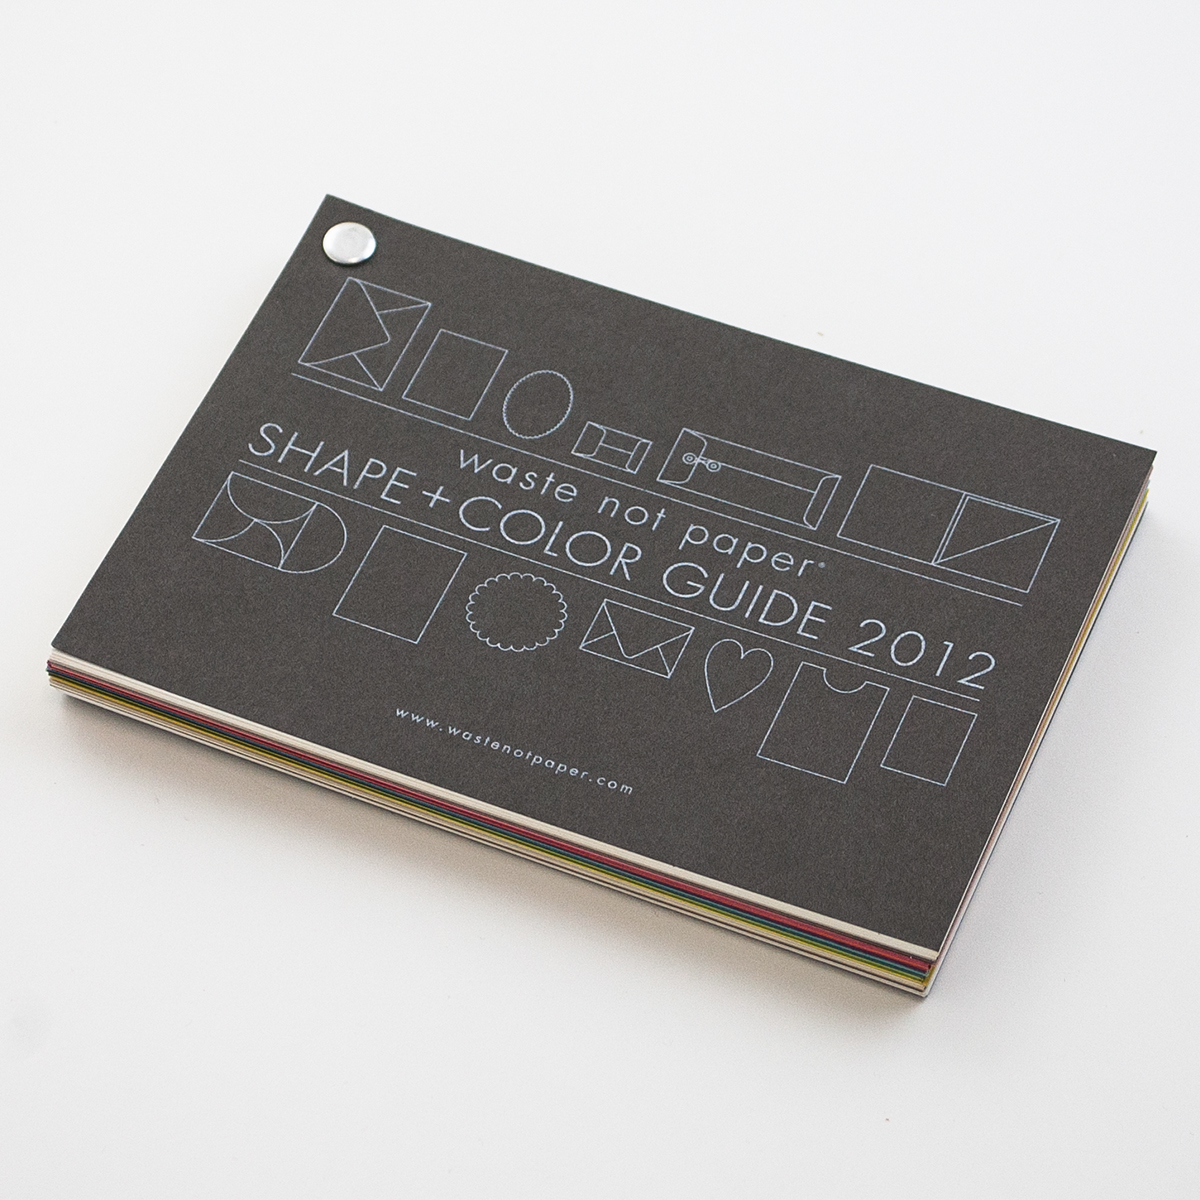 paper samples for paper source on behance